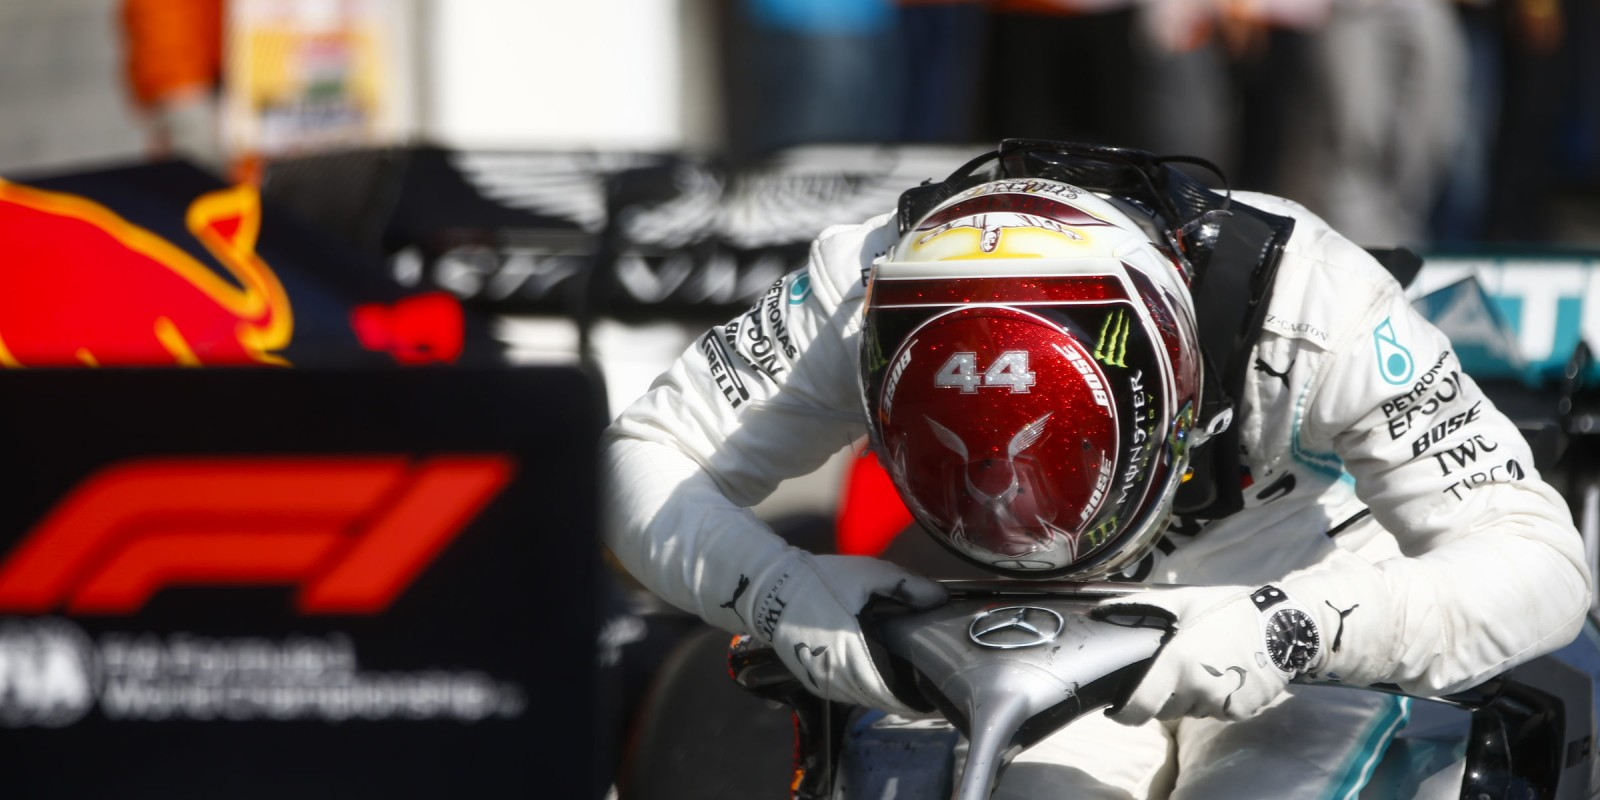 Images from the 2019 Hungarian Grand Prix